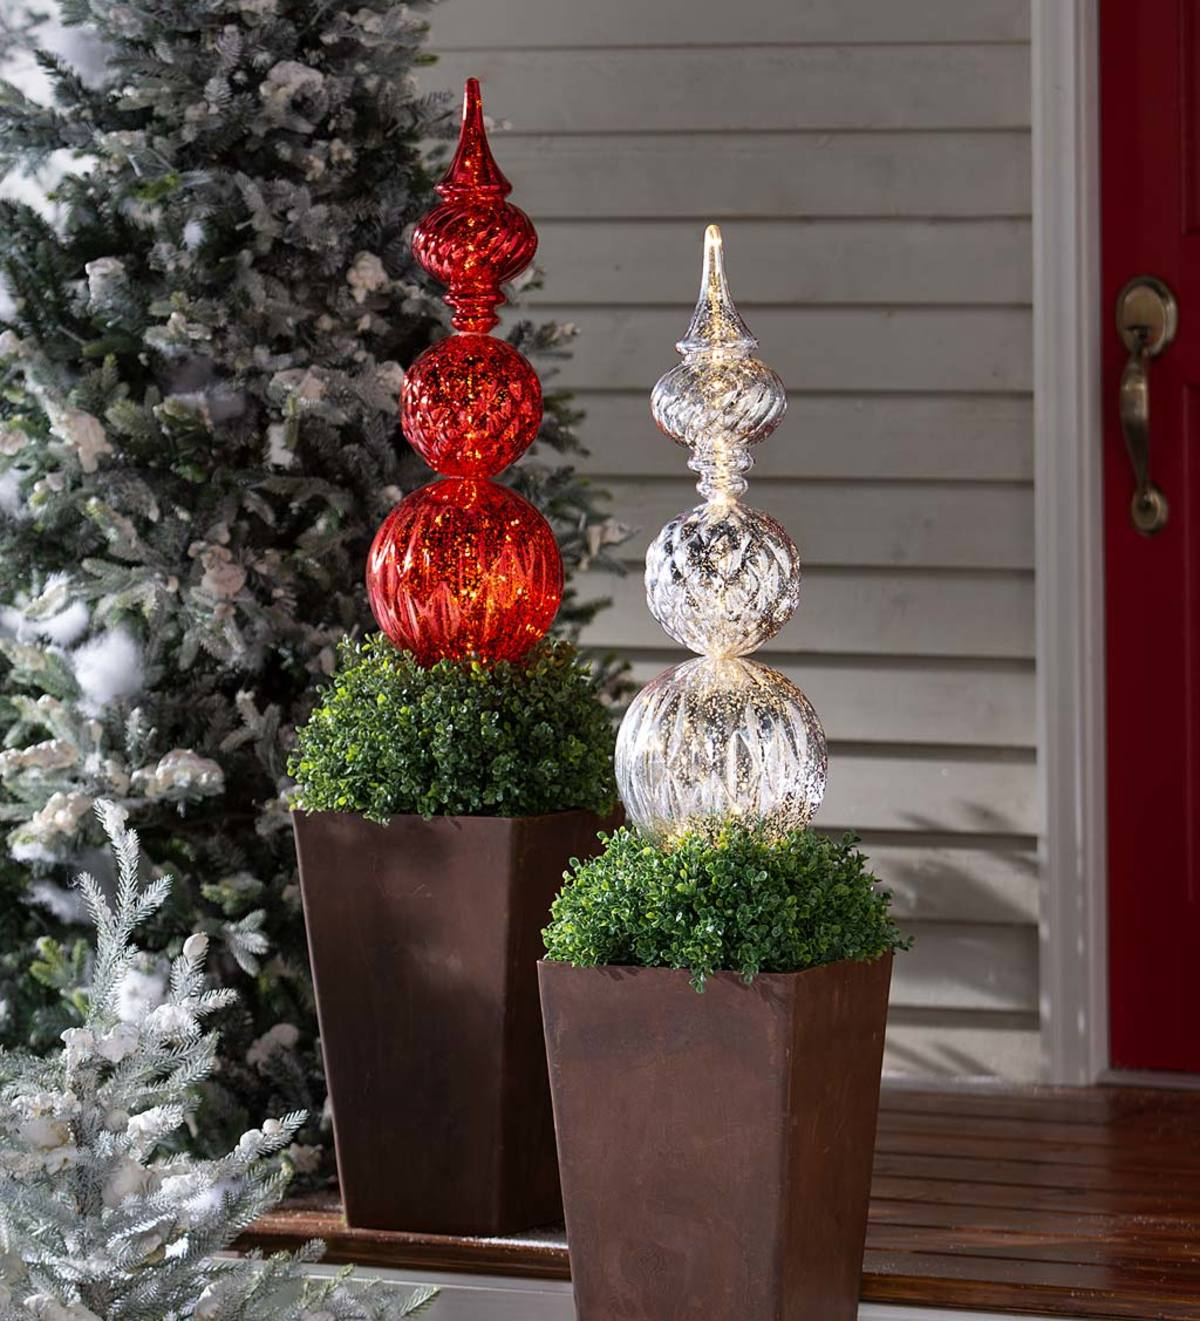 Indoor Outdoor Lighted Large Shatterproof Holiday Finial Ornament Stake Red Wind And Weather